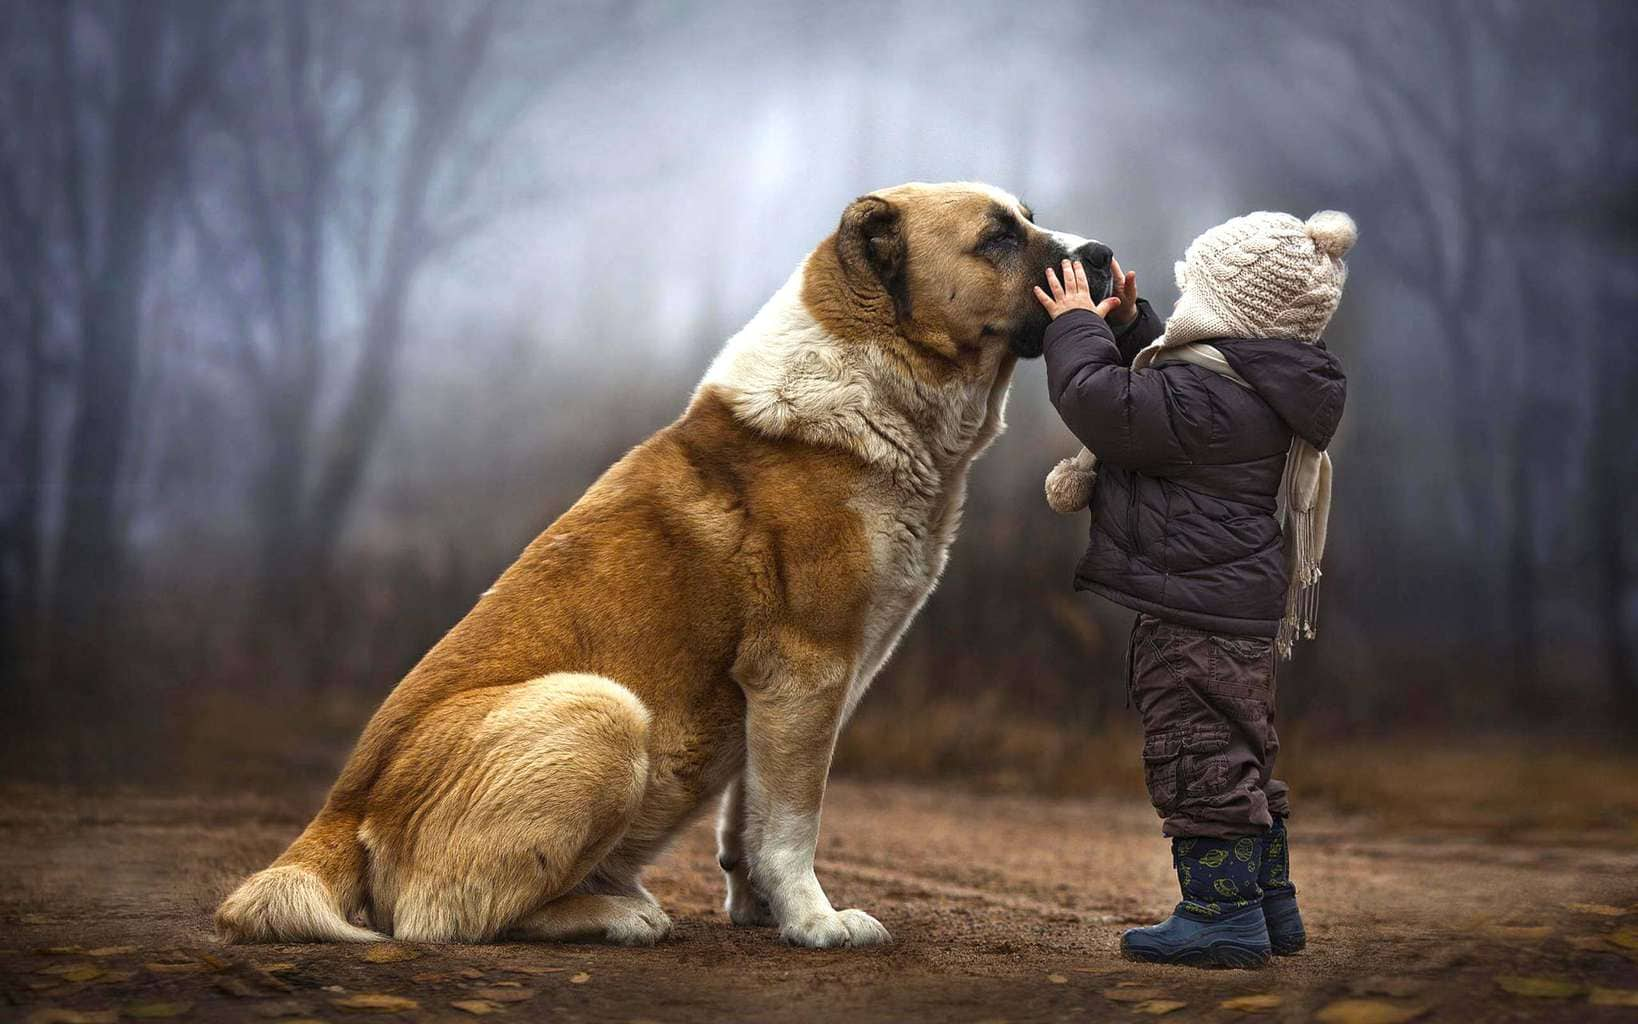 Cute-baby-and-dog-friendship-wallpaper